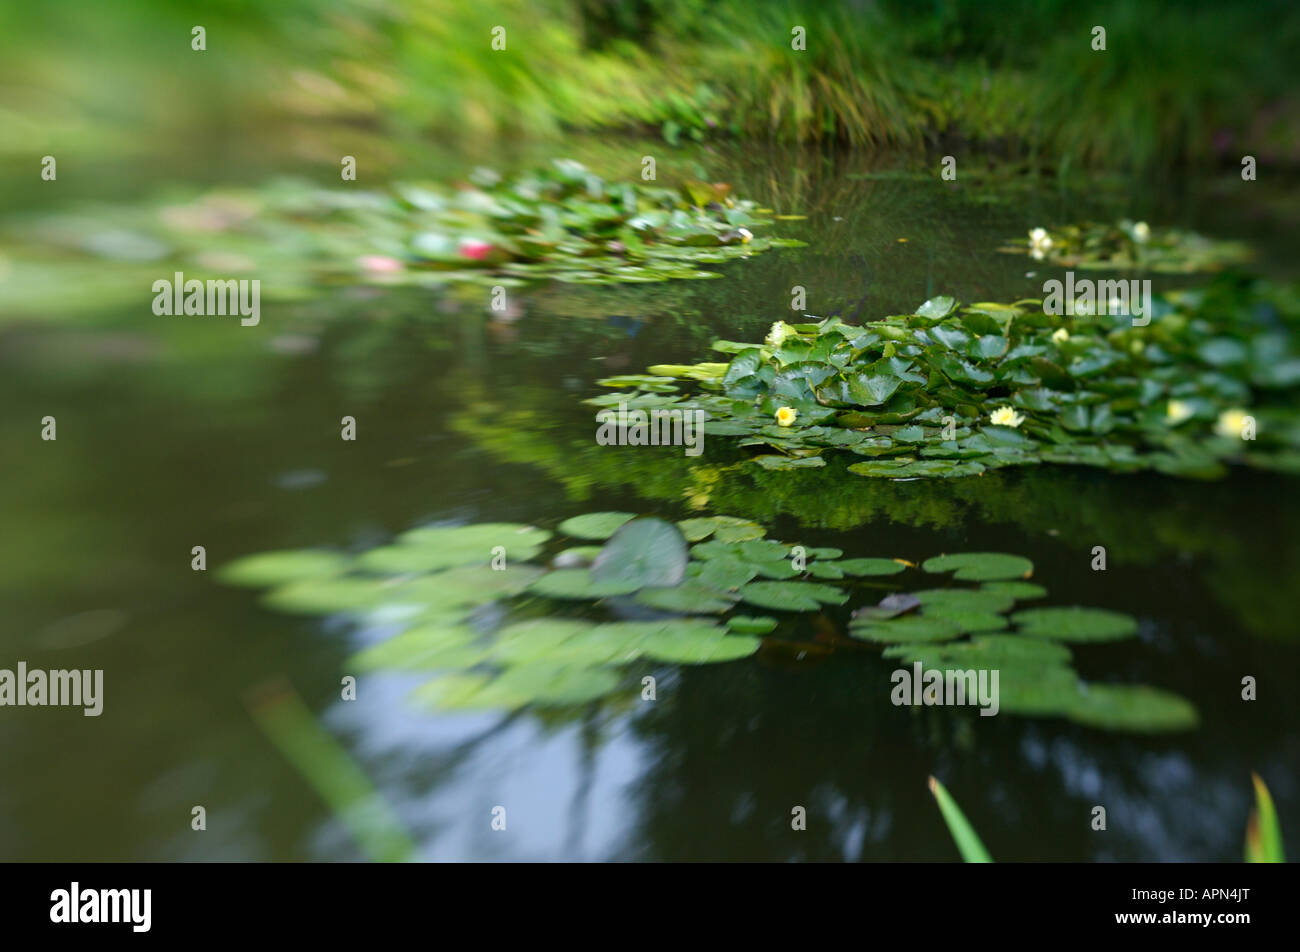 Monet s Garden in Giverny France - Stock Image